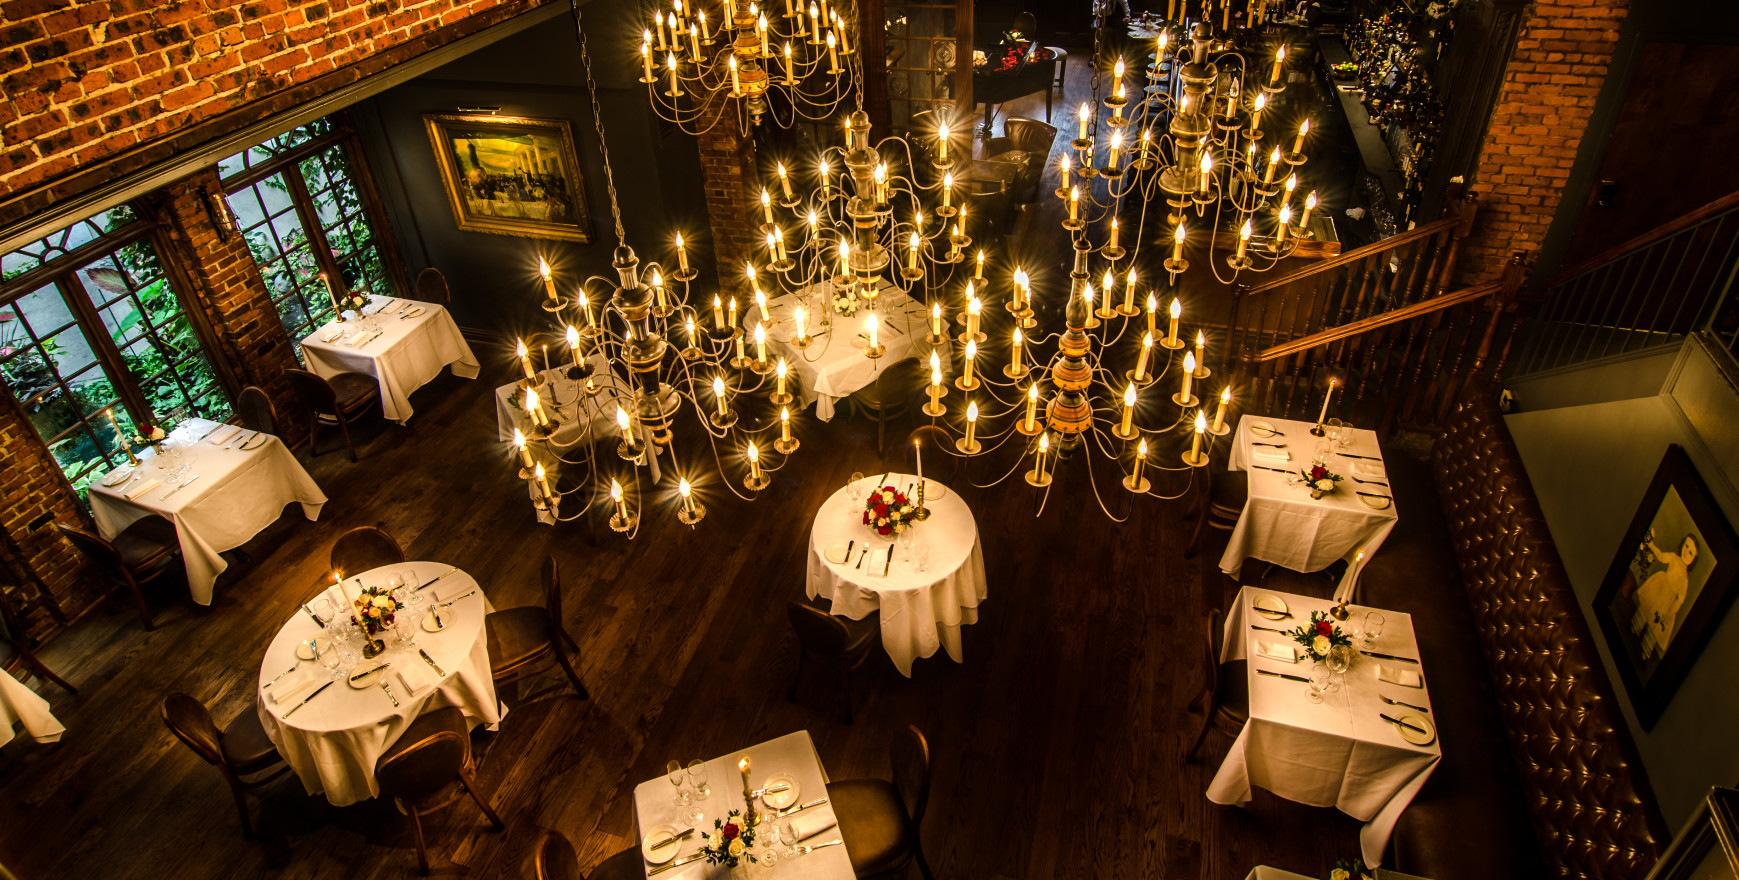 Top Three Romantic Restaurants for Valentines Day - One If by Land, Two If by Sea, New York